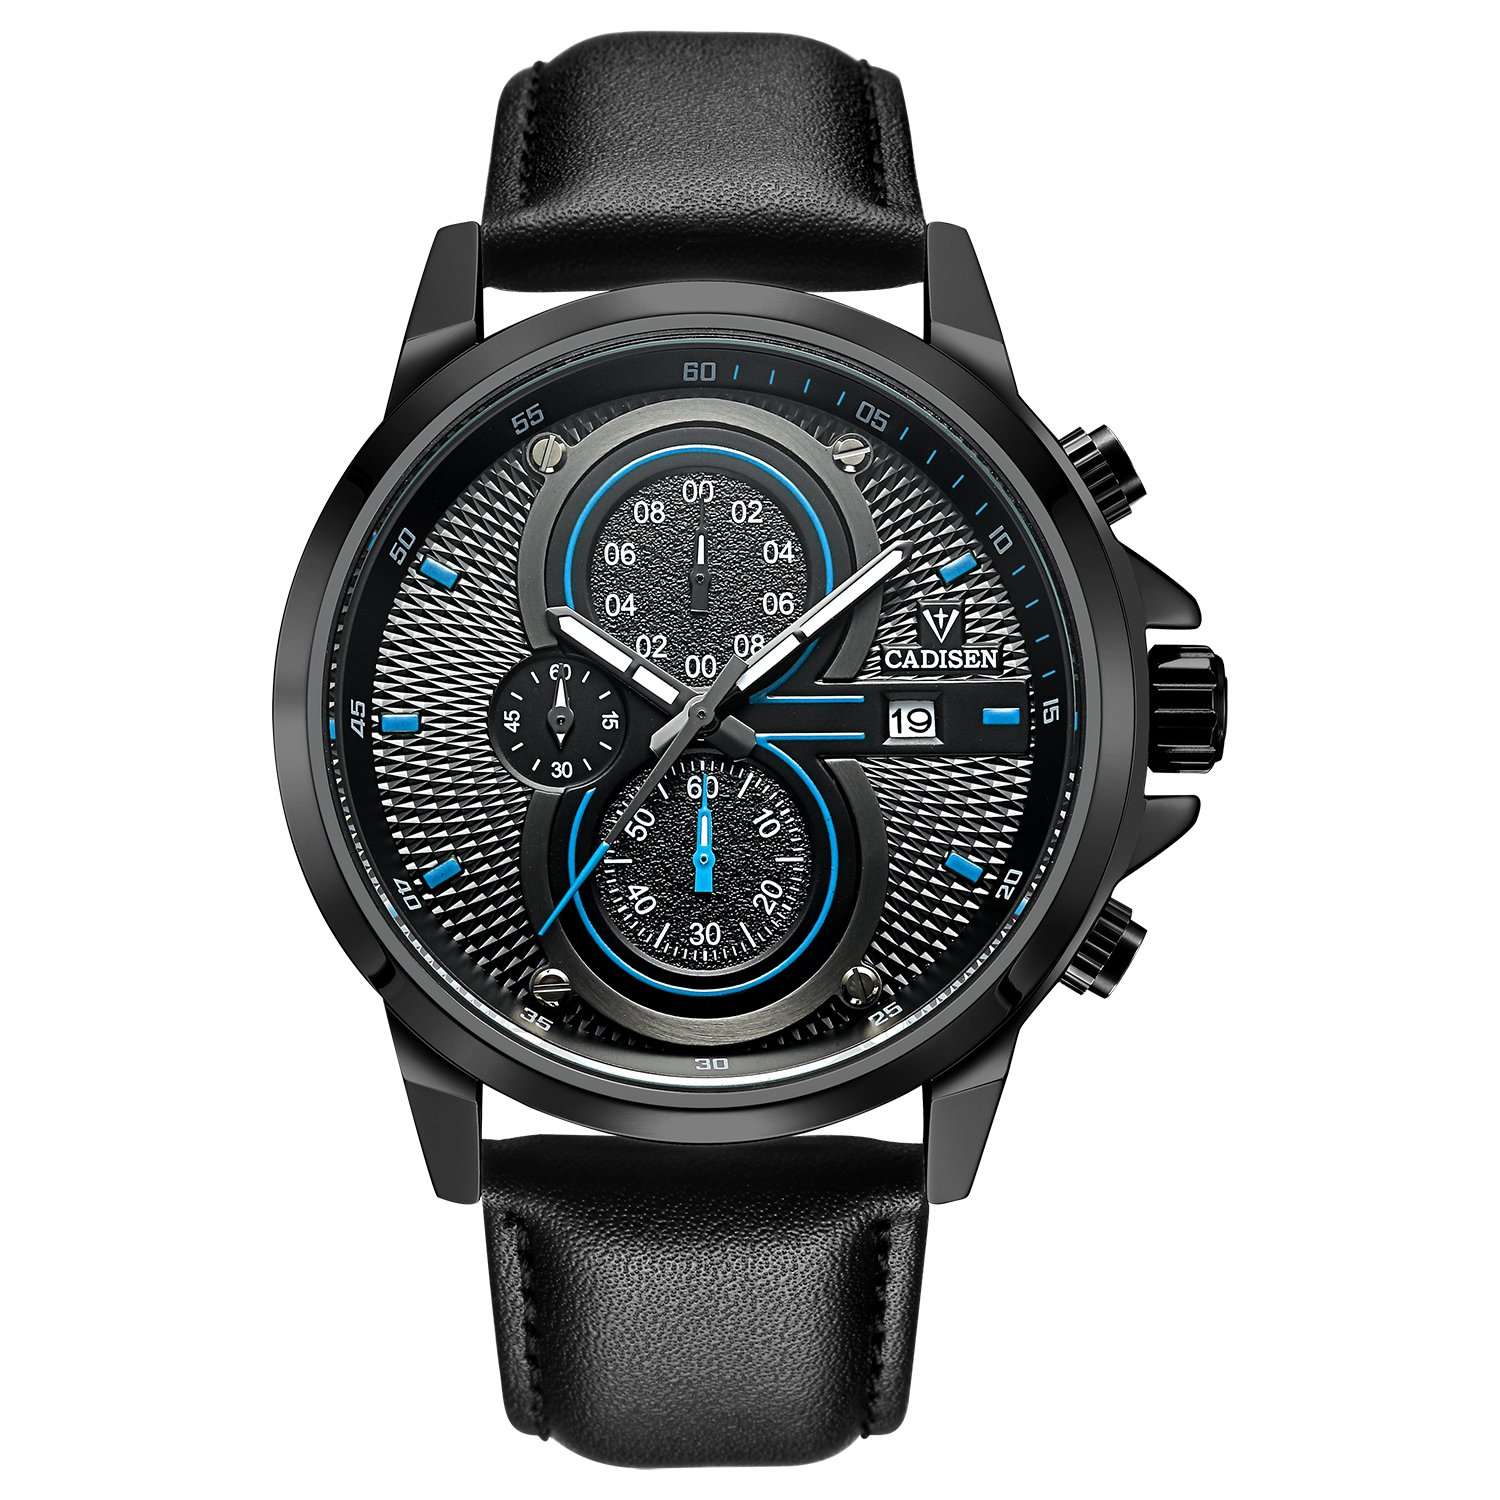 Amazon.com: CADISEN Mens Watch Sport Military Chronograph Casual Waterproof Analog Quartz Watch with Stainless Steel Strap (C9054L-BLUE): Watches